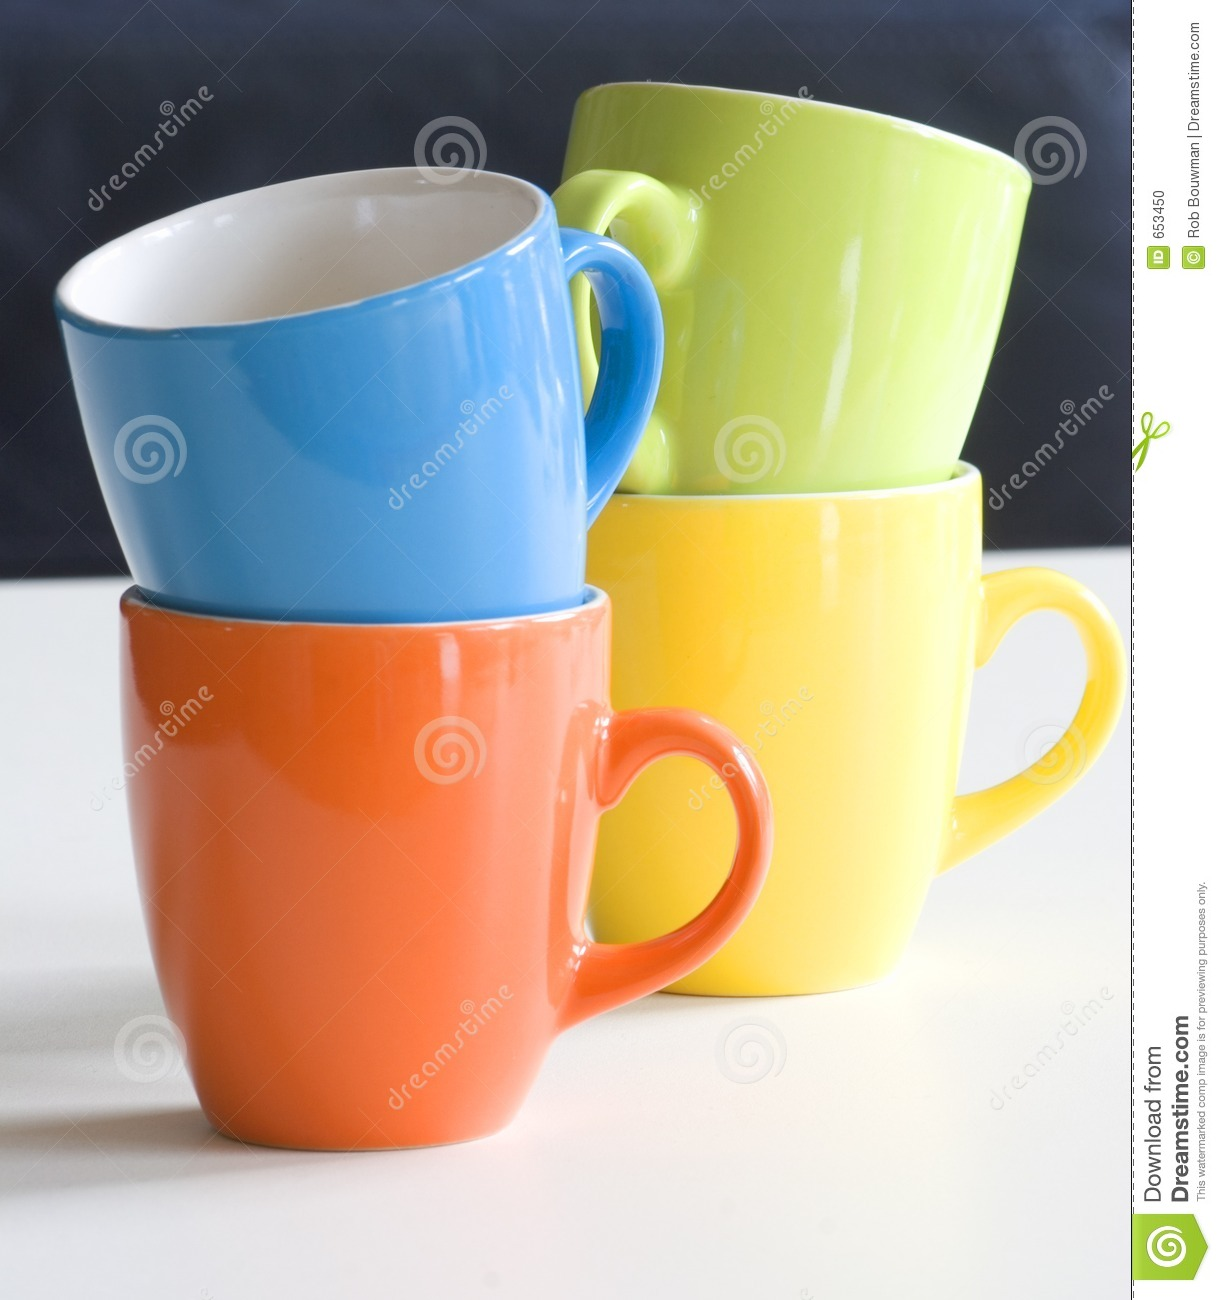 Pics Of Cupping: Cups Stock Photo